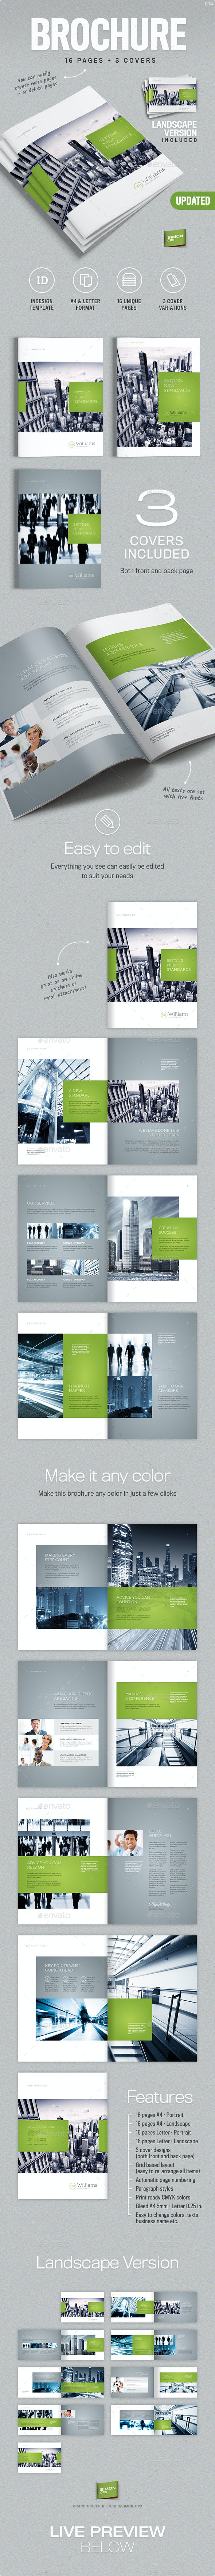 Corporate Business Brochure 16 pages A4 + Letter - Corporate Brochures